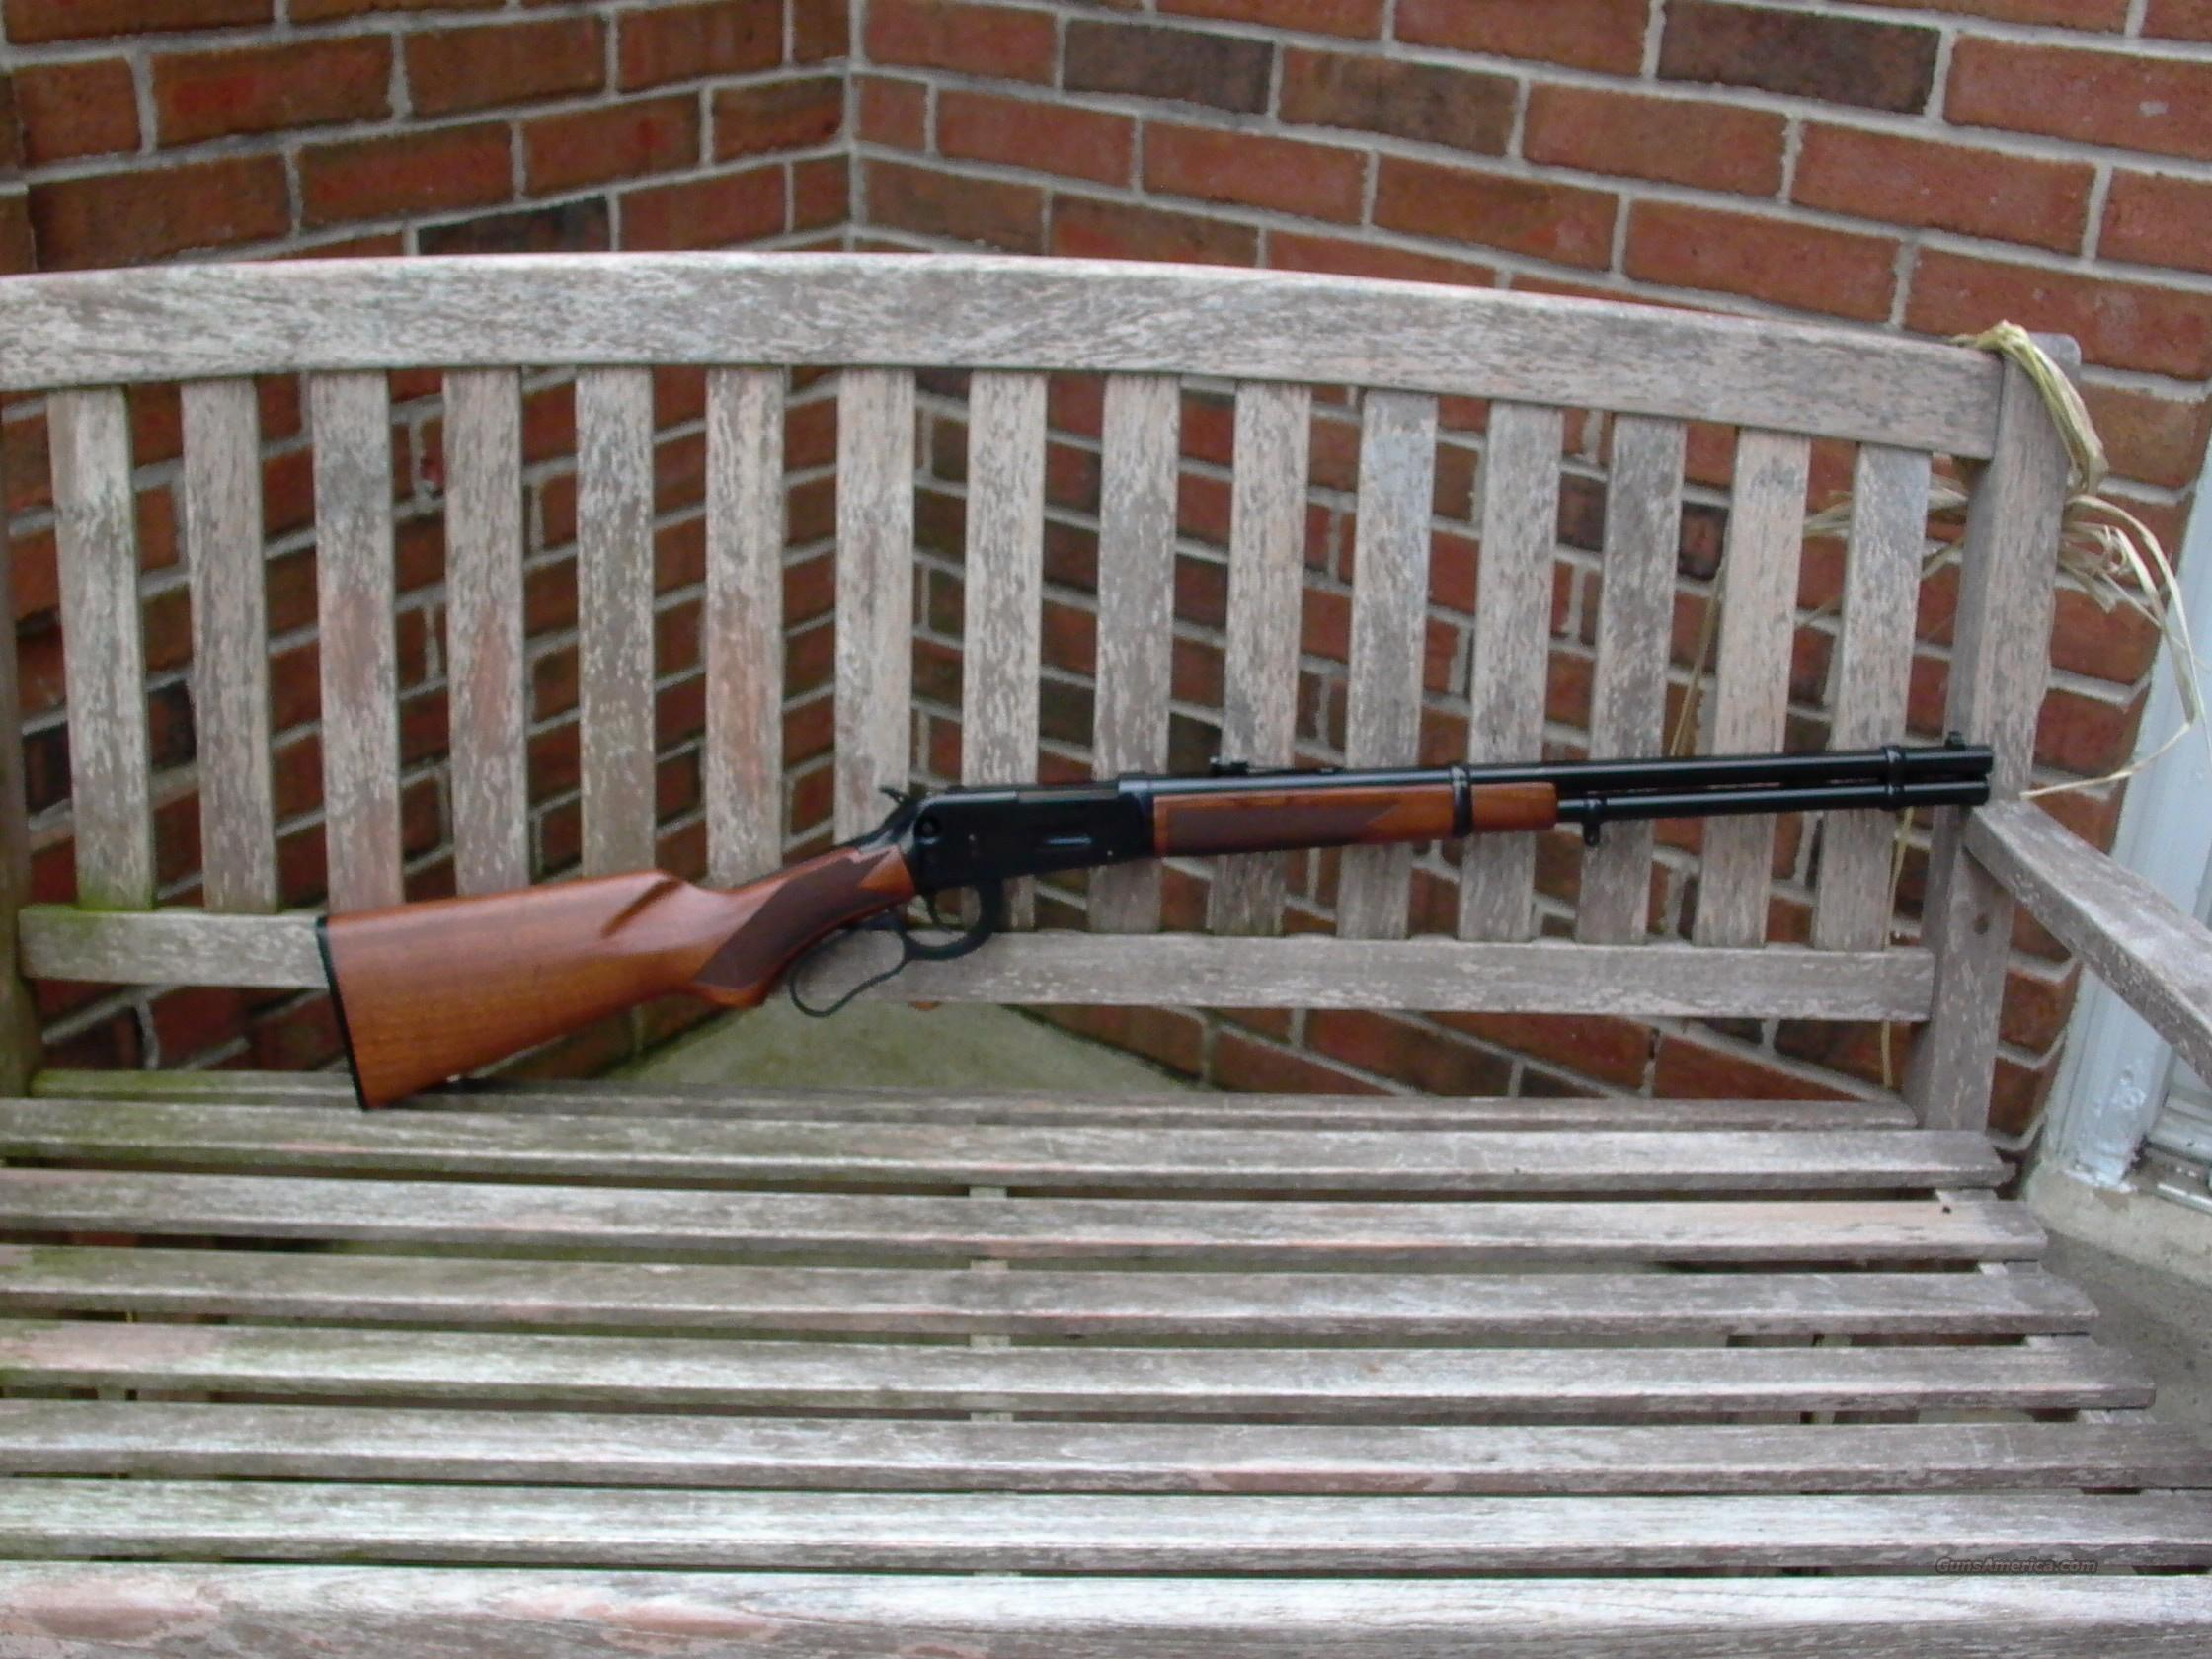 94AE  45 COLT   Guns > Rifles > Winchester Rifles - Modern Lever > Model 94 > Post-64